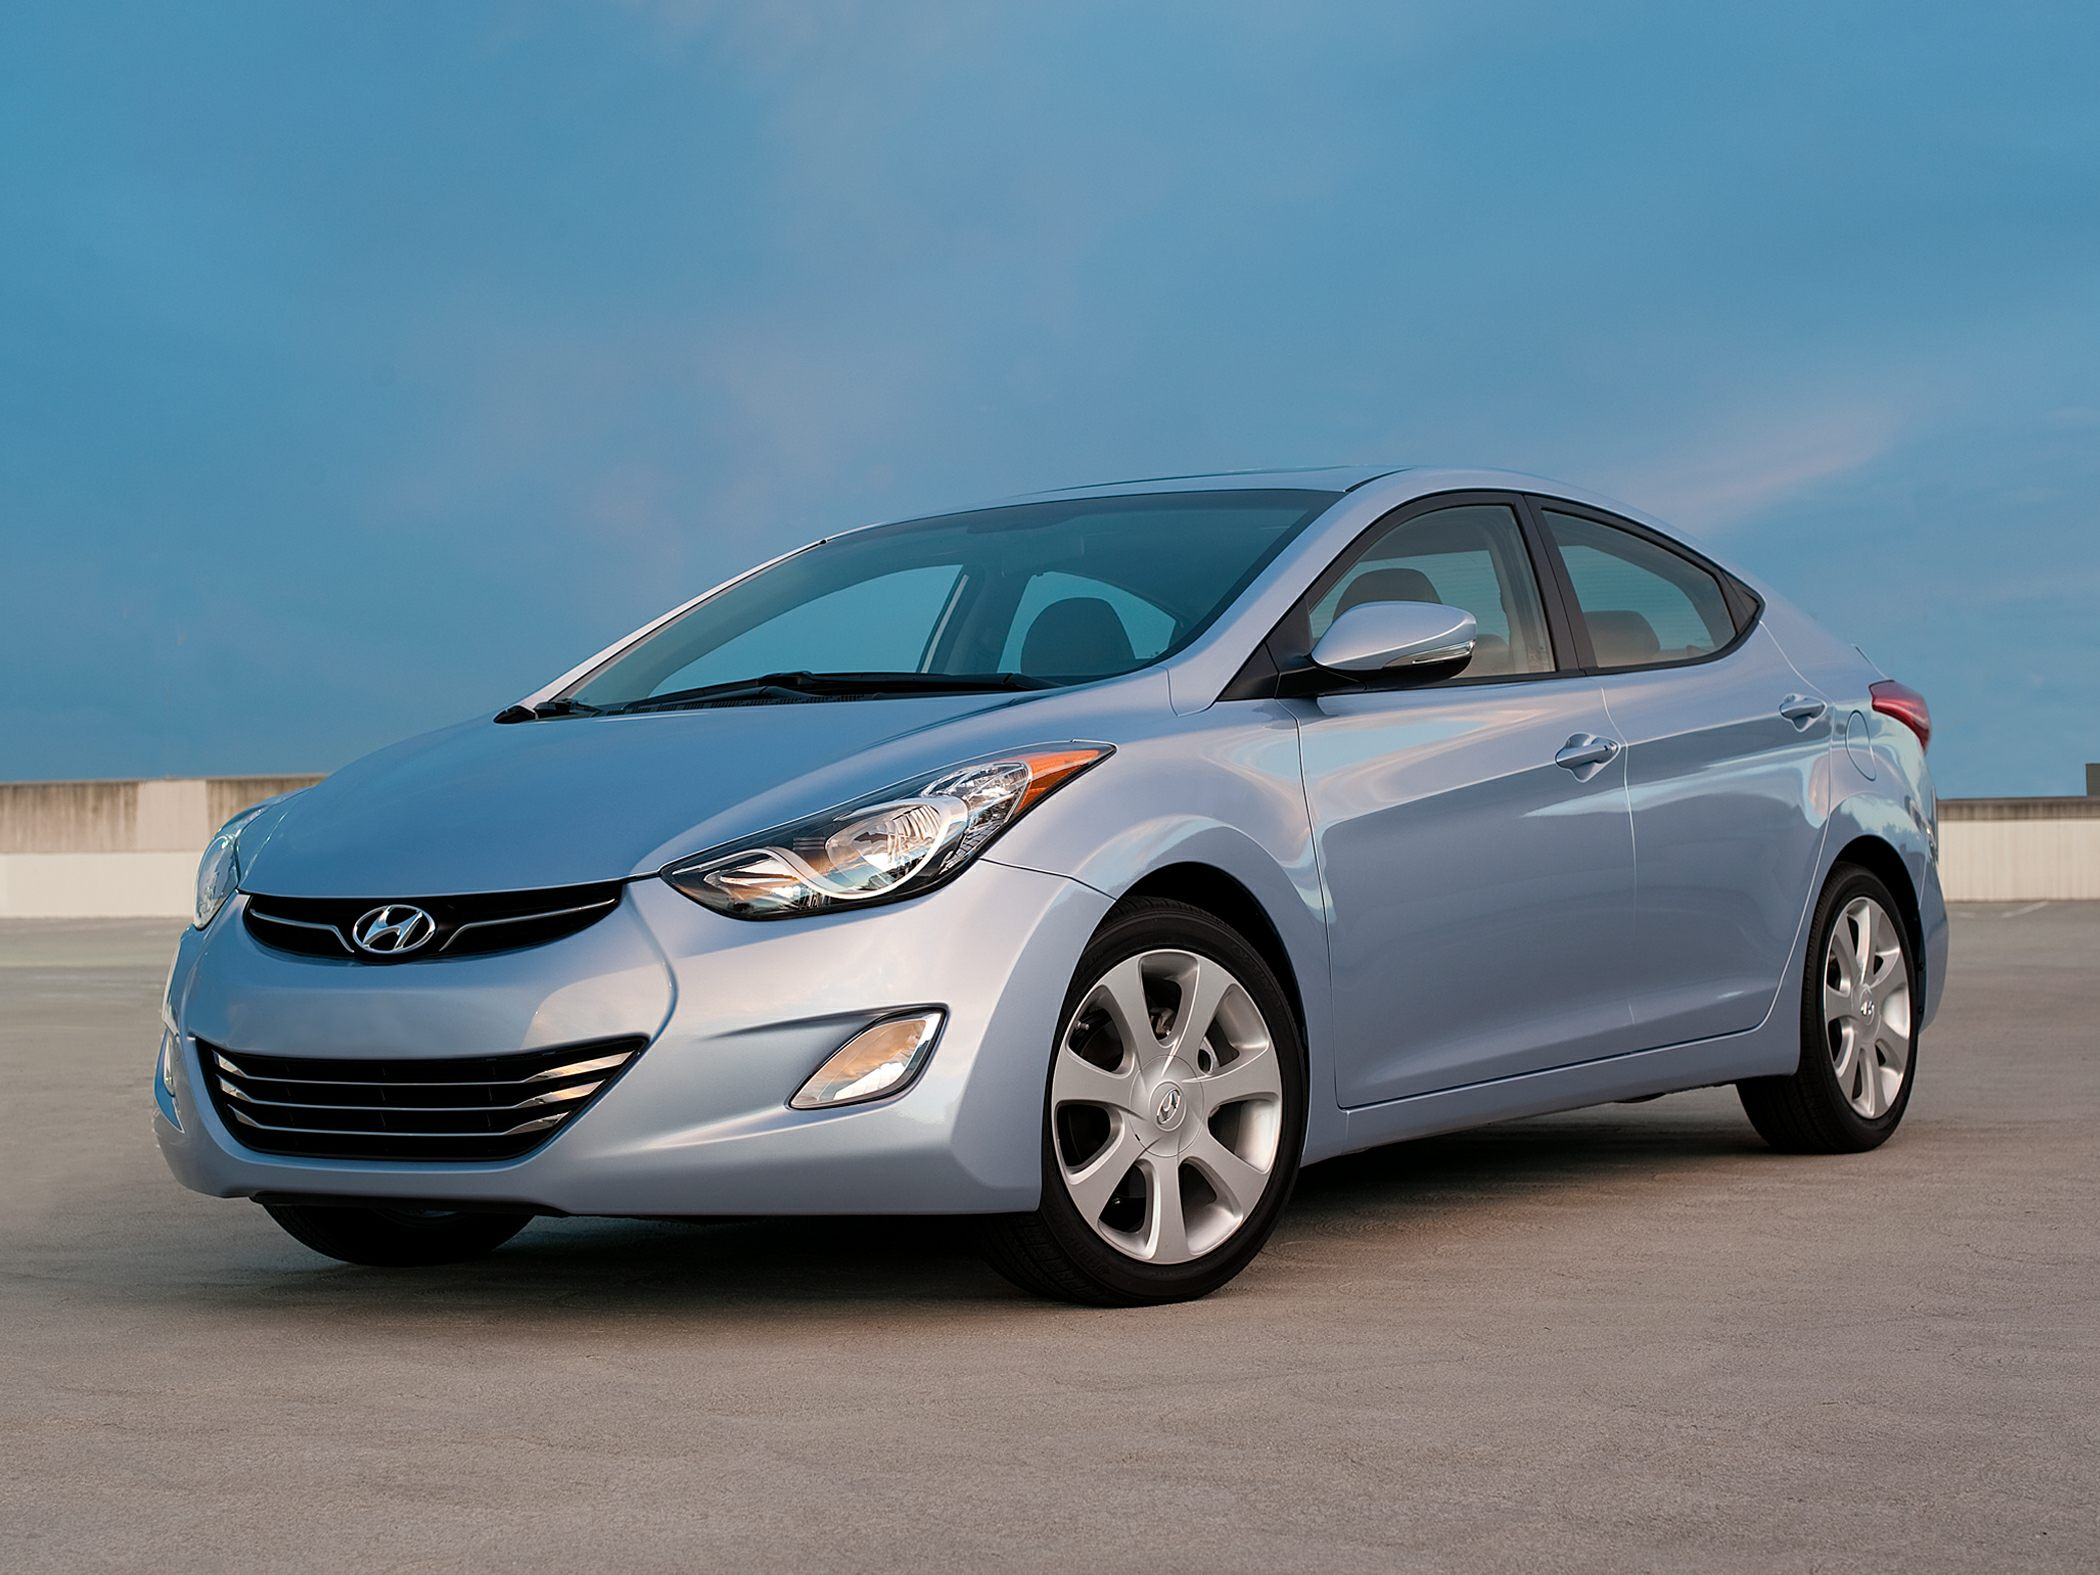 2013 Hyundai Elantra GLS Gassss saverrrr Great MPG New Arrival You dont have to worry about dep